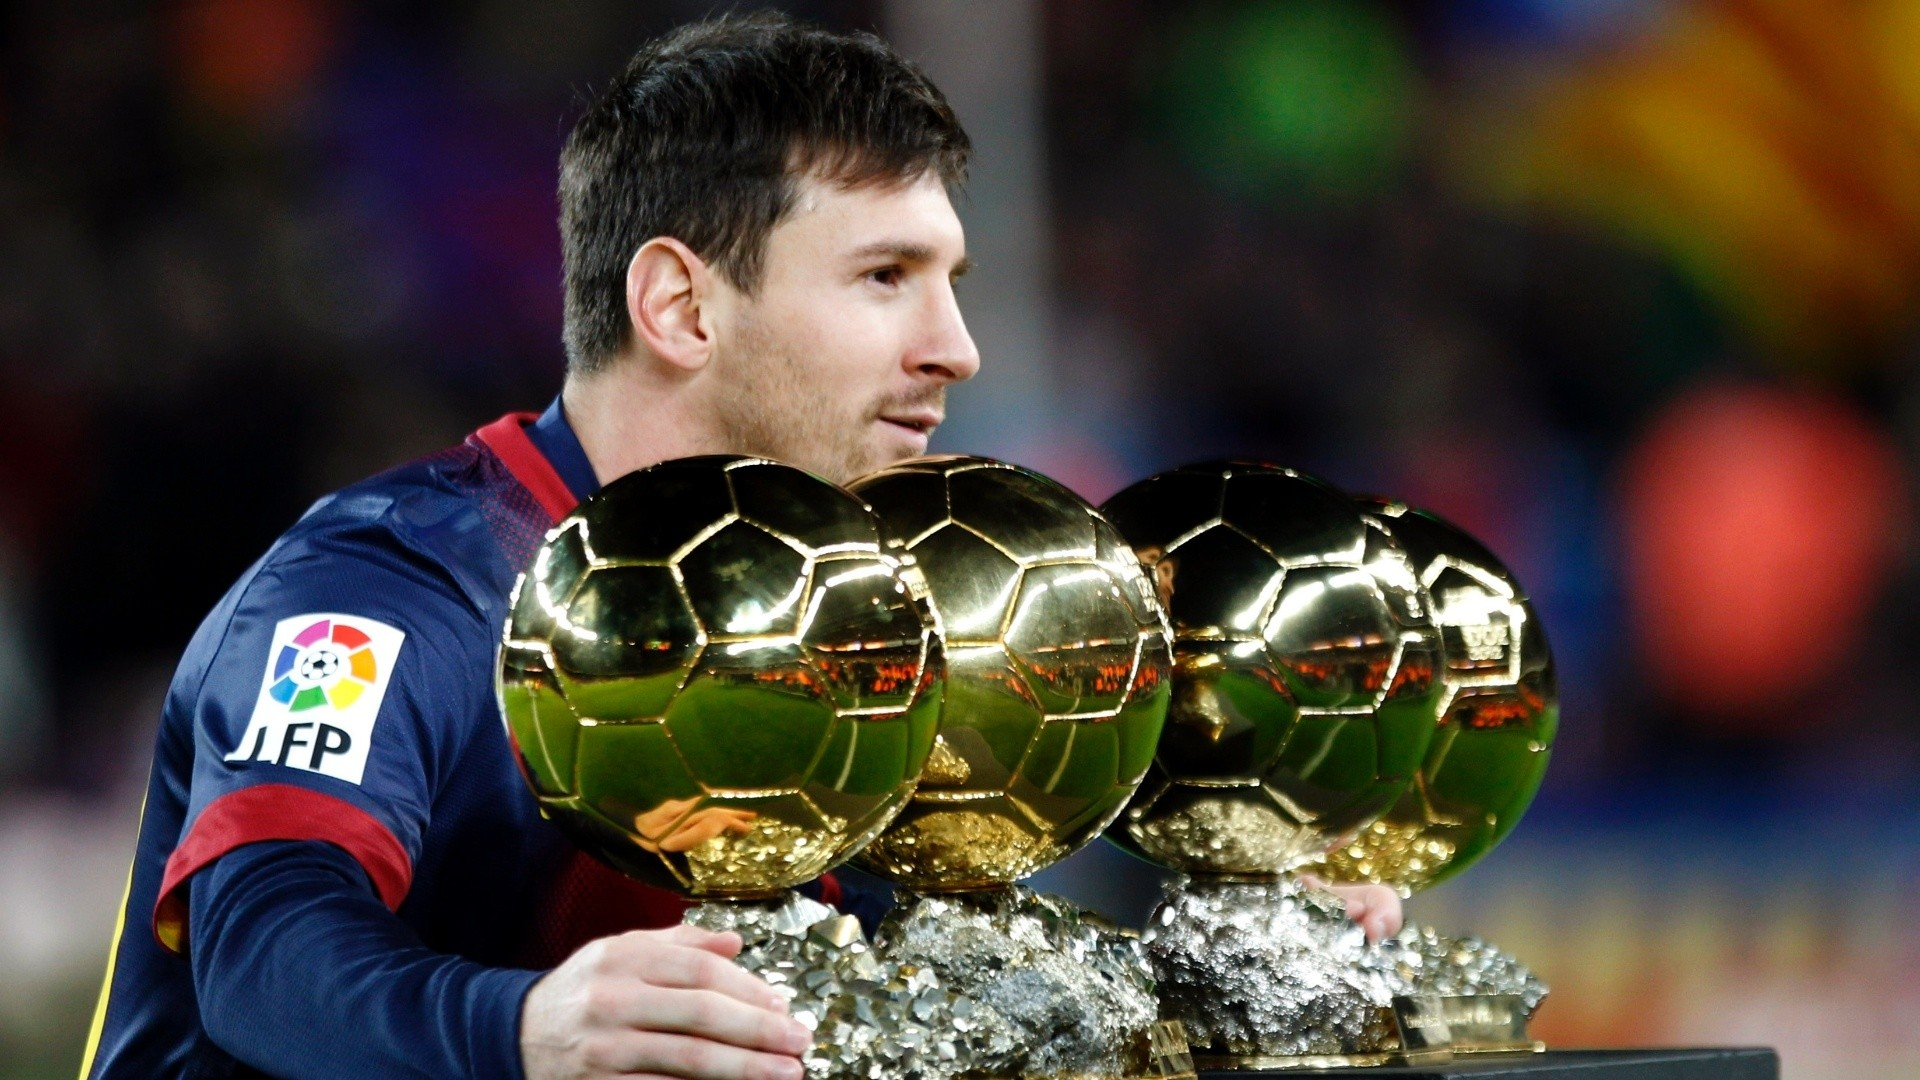 Soccer - Lionel Messi - FrizeMedia - Digital Marketing And Advertising